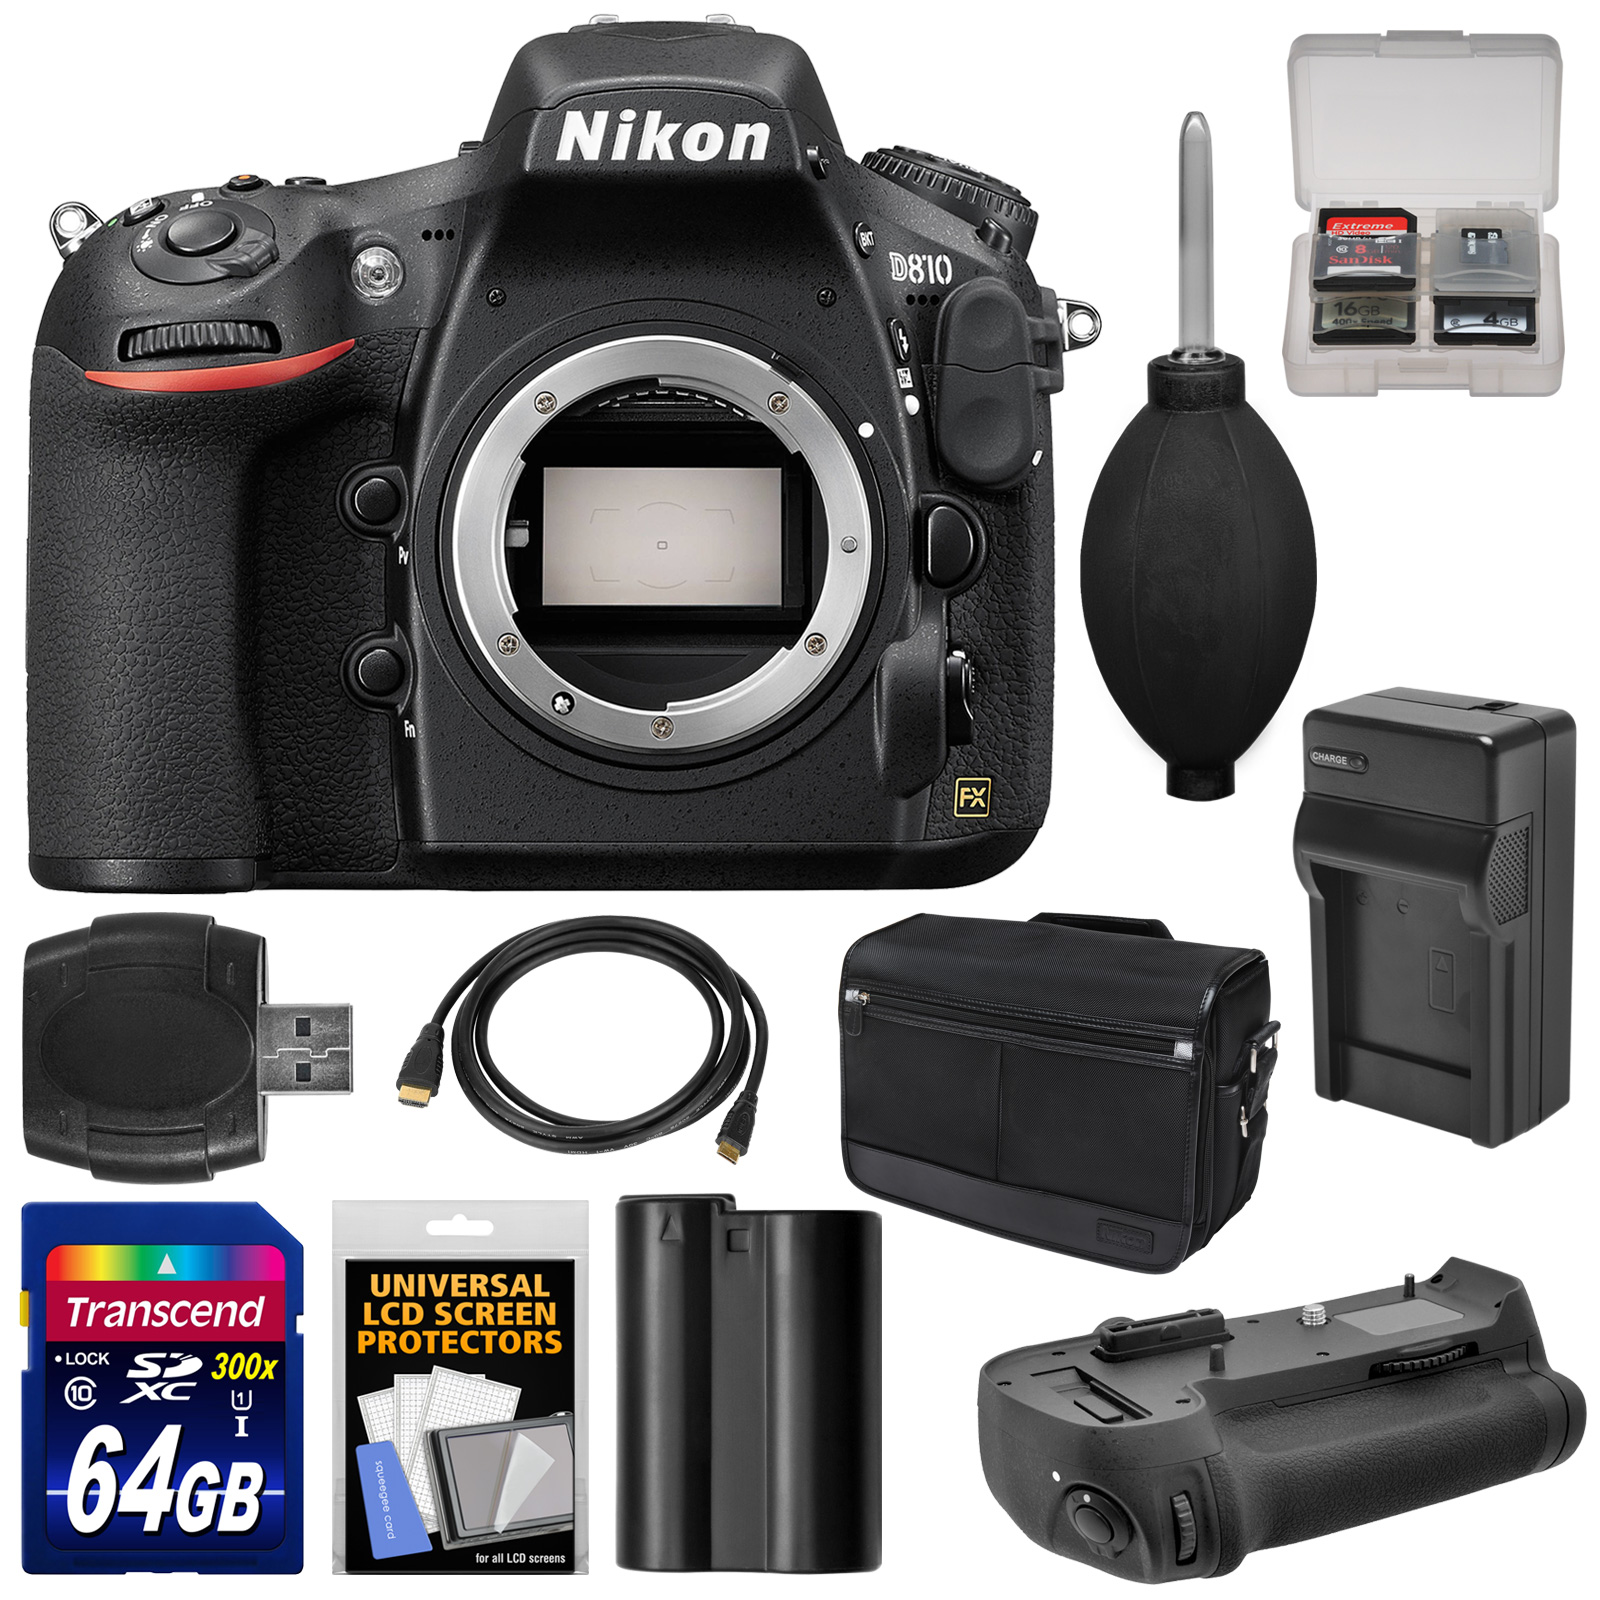 Nikon D810 Digital SLR Camera Body with 64GB Card + Battery & Charger + Shoulder Bag + Grip + Accessory Kit by Nikon